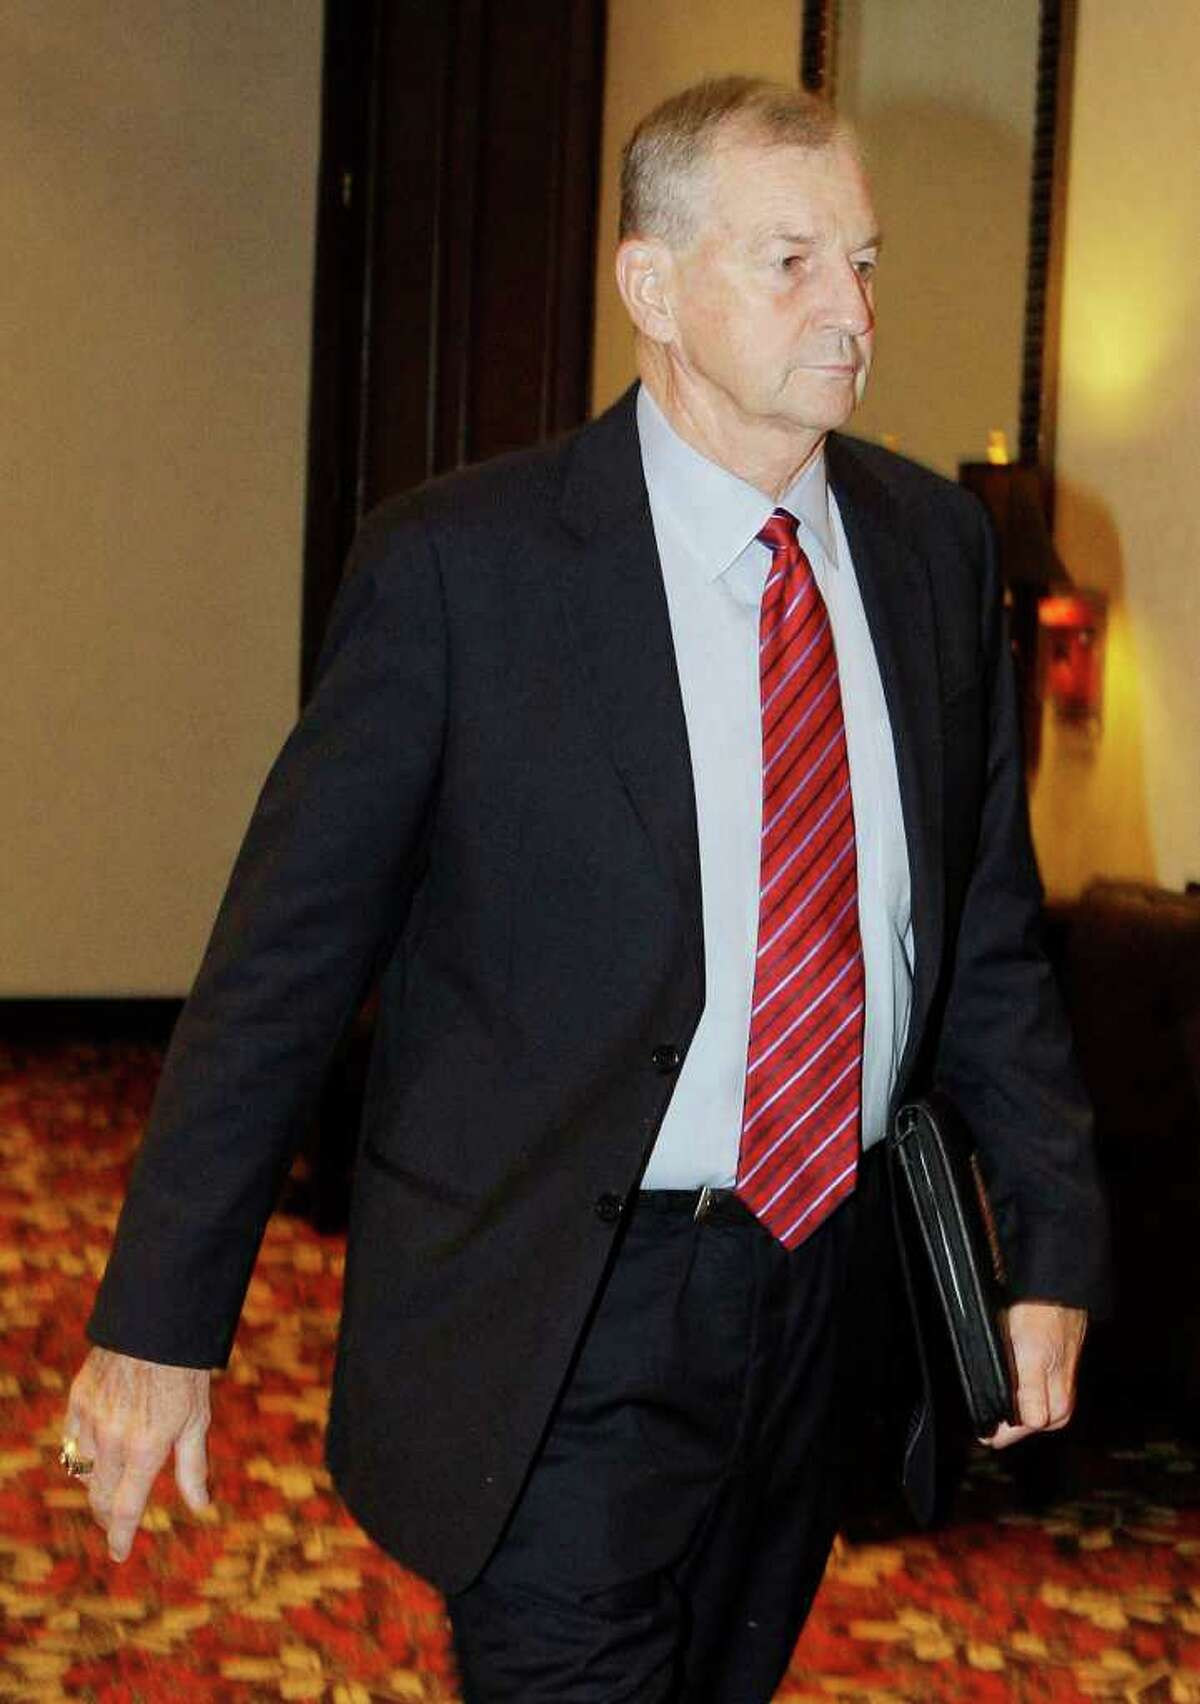 University of Connecticut men's basketball coach Jim Calhoun arrives for the start of a hearing before the NCAA infractions committee in Indianapolis, Friday, Oct. 15, 2010. Connecticut has acknowledged the program committed major NCAA recruiting violations and has imposed its own sanctions, including two years' probation and a loss of one scholarship for the next two seasons.